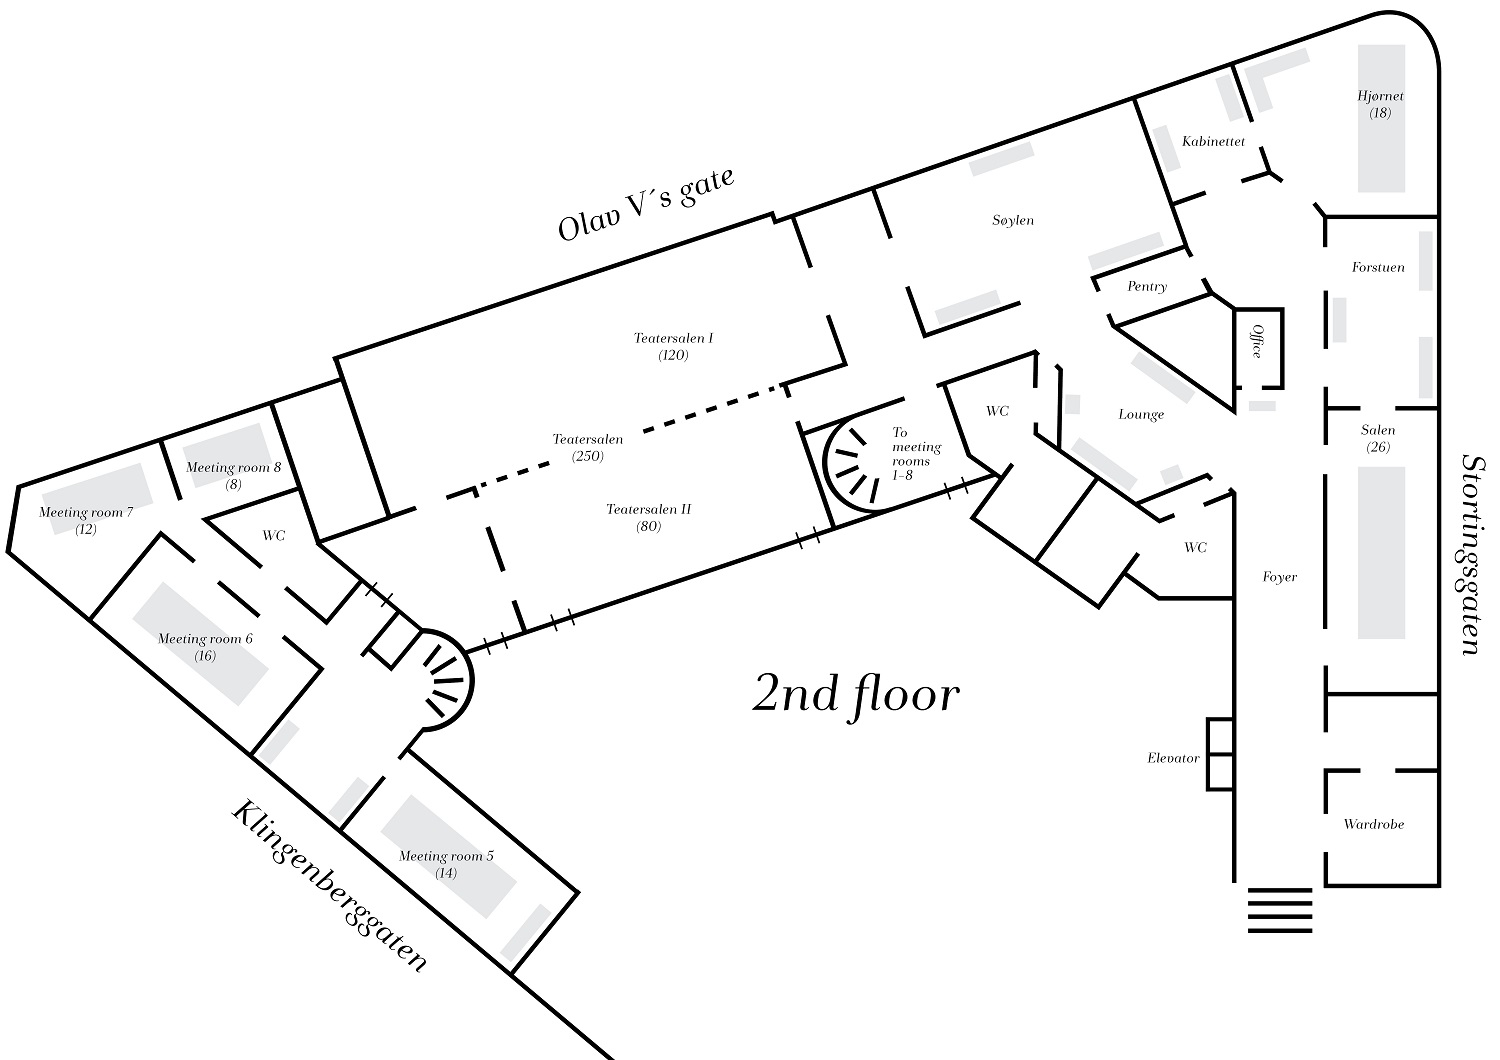 Floor plan over venues at Continental in Oslo